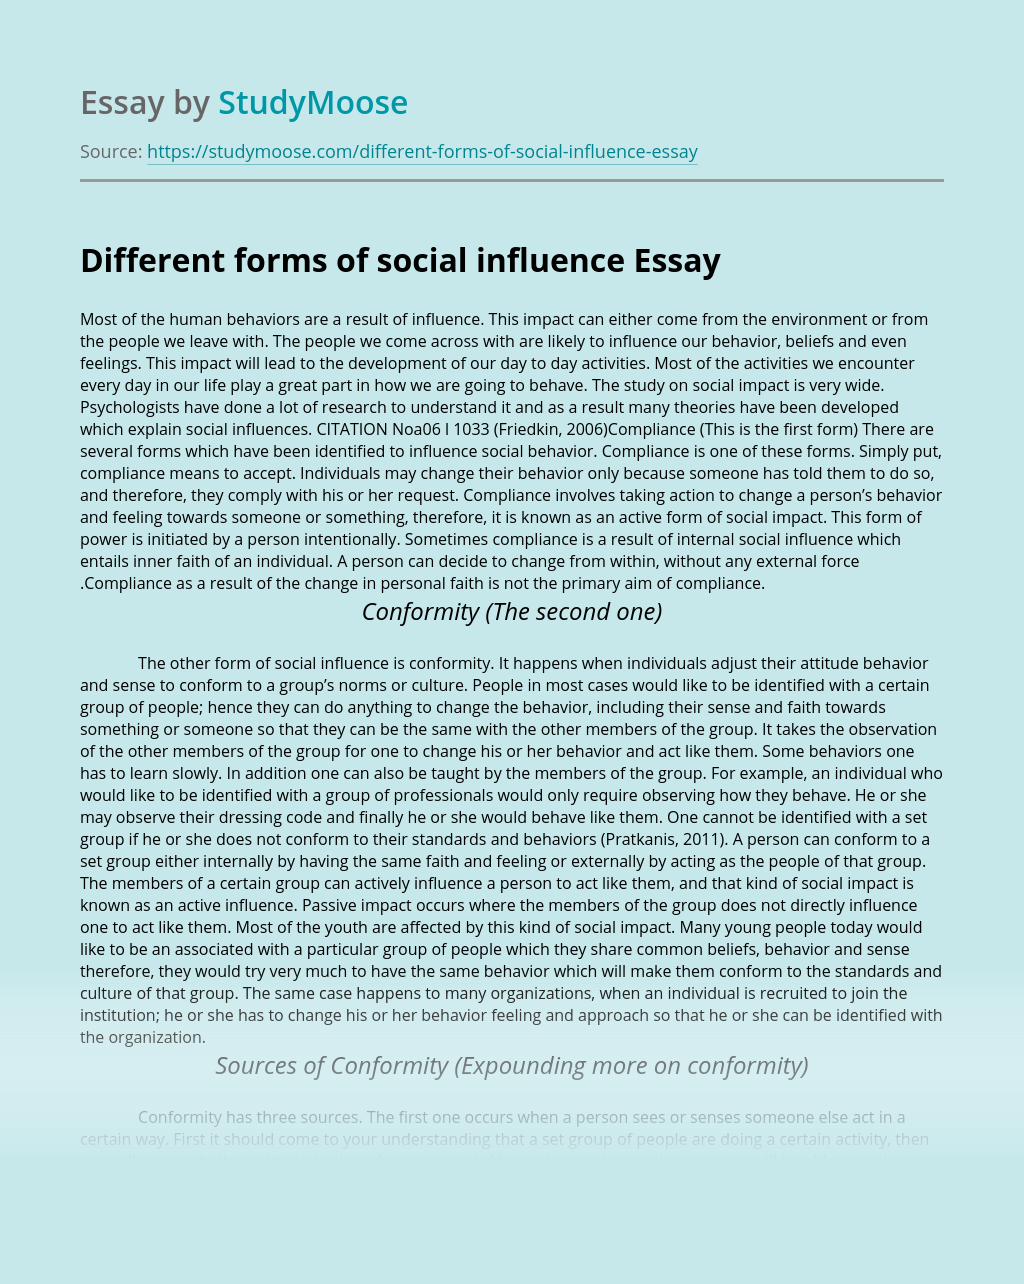 Different forms of social influence